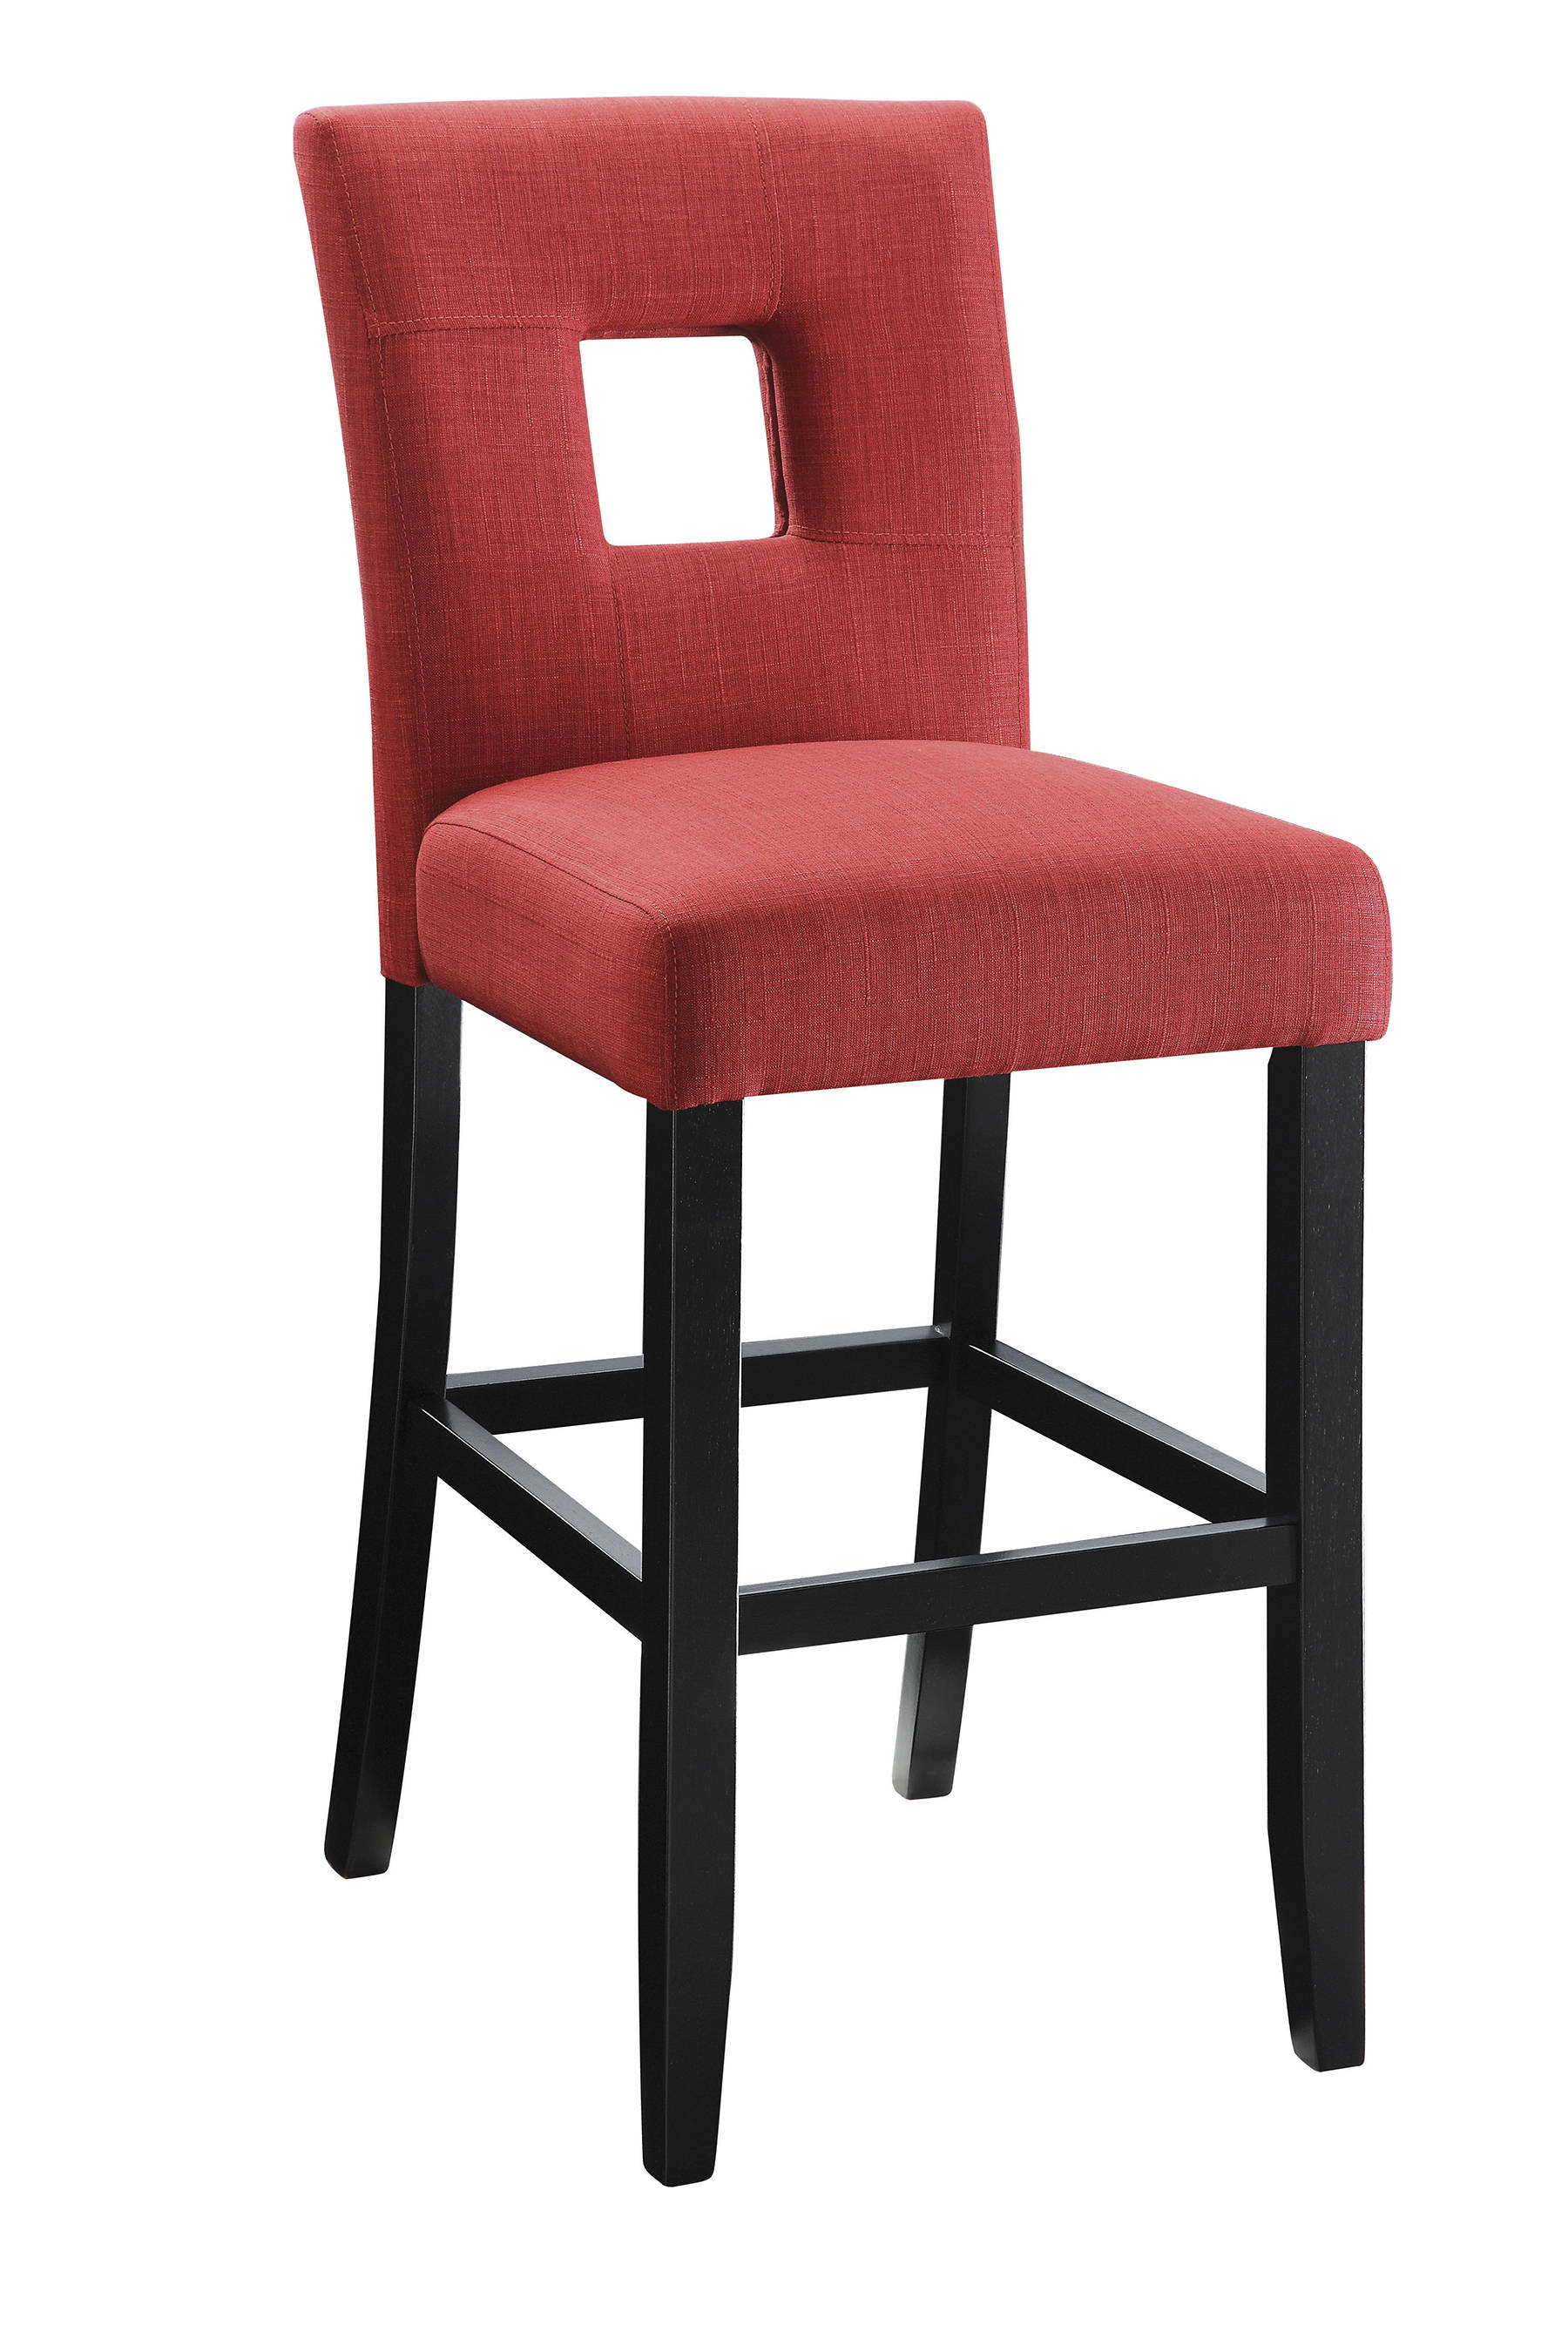 2 andenne red upholstered fabric keyhole back counter height chairs the classy home. Black Bedroom Furniture Sets. Home Design Ideas